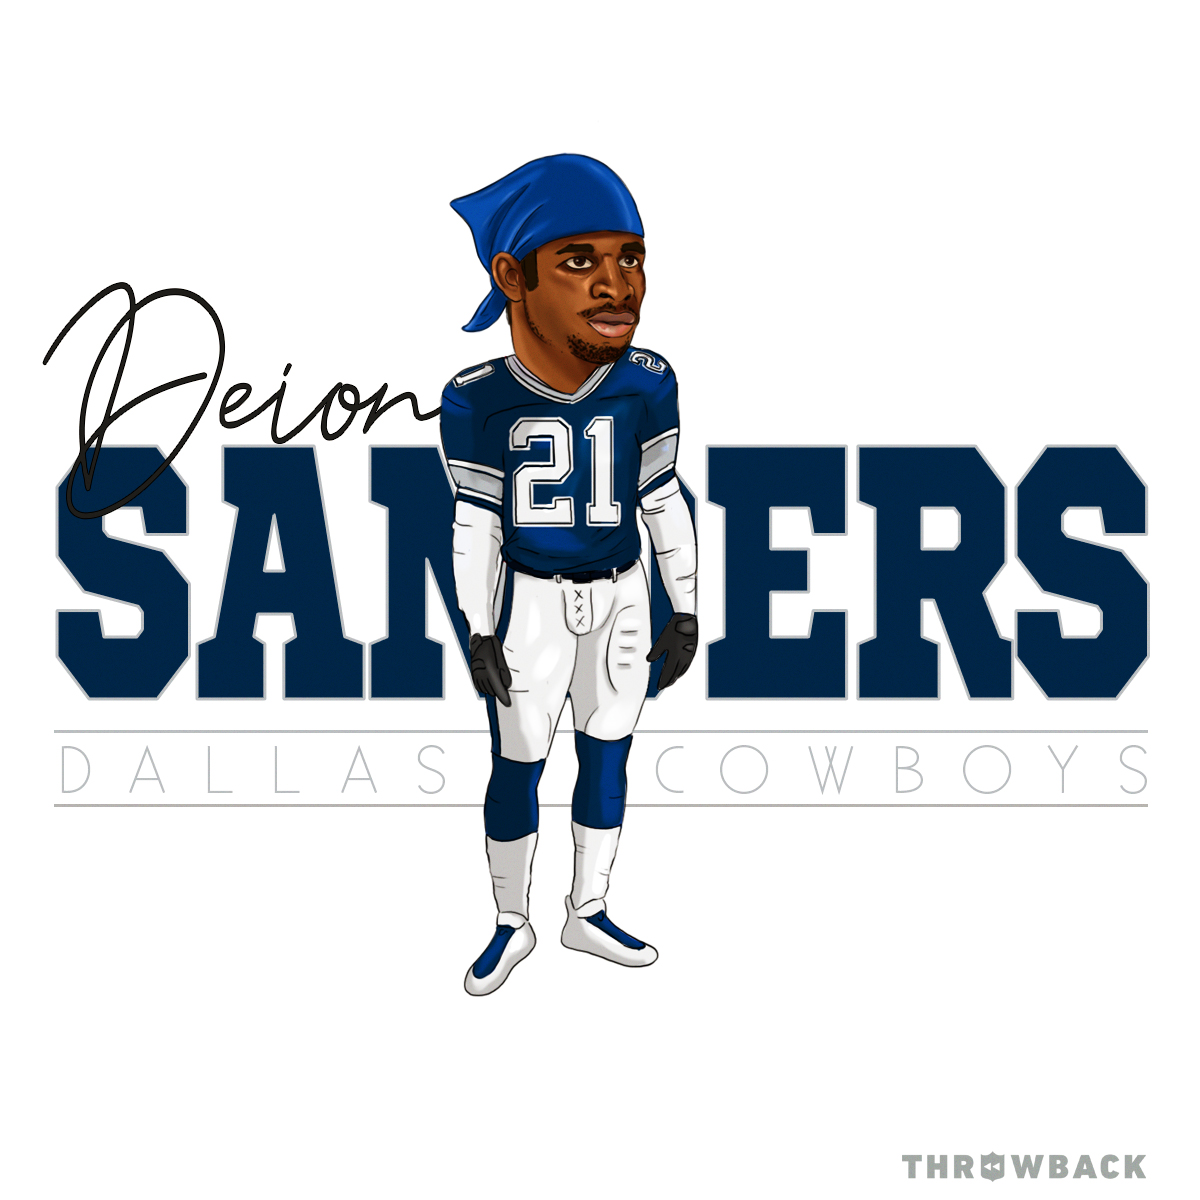 180815_DEION-SANDERS-SINGLE_v02_RW.jpg